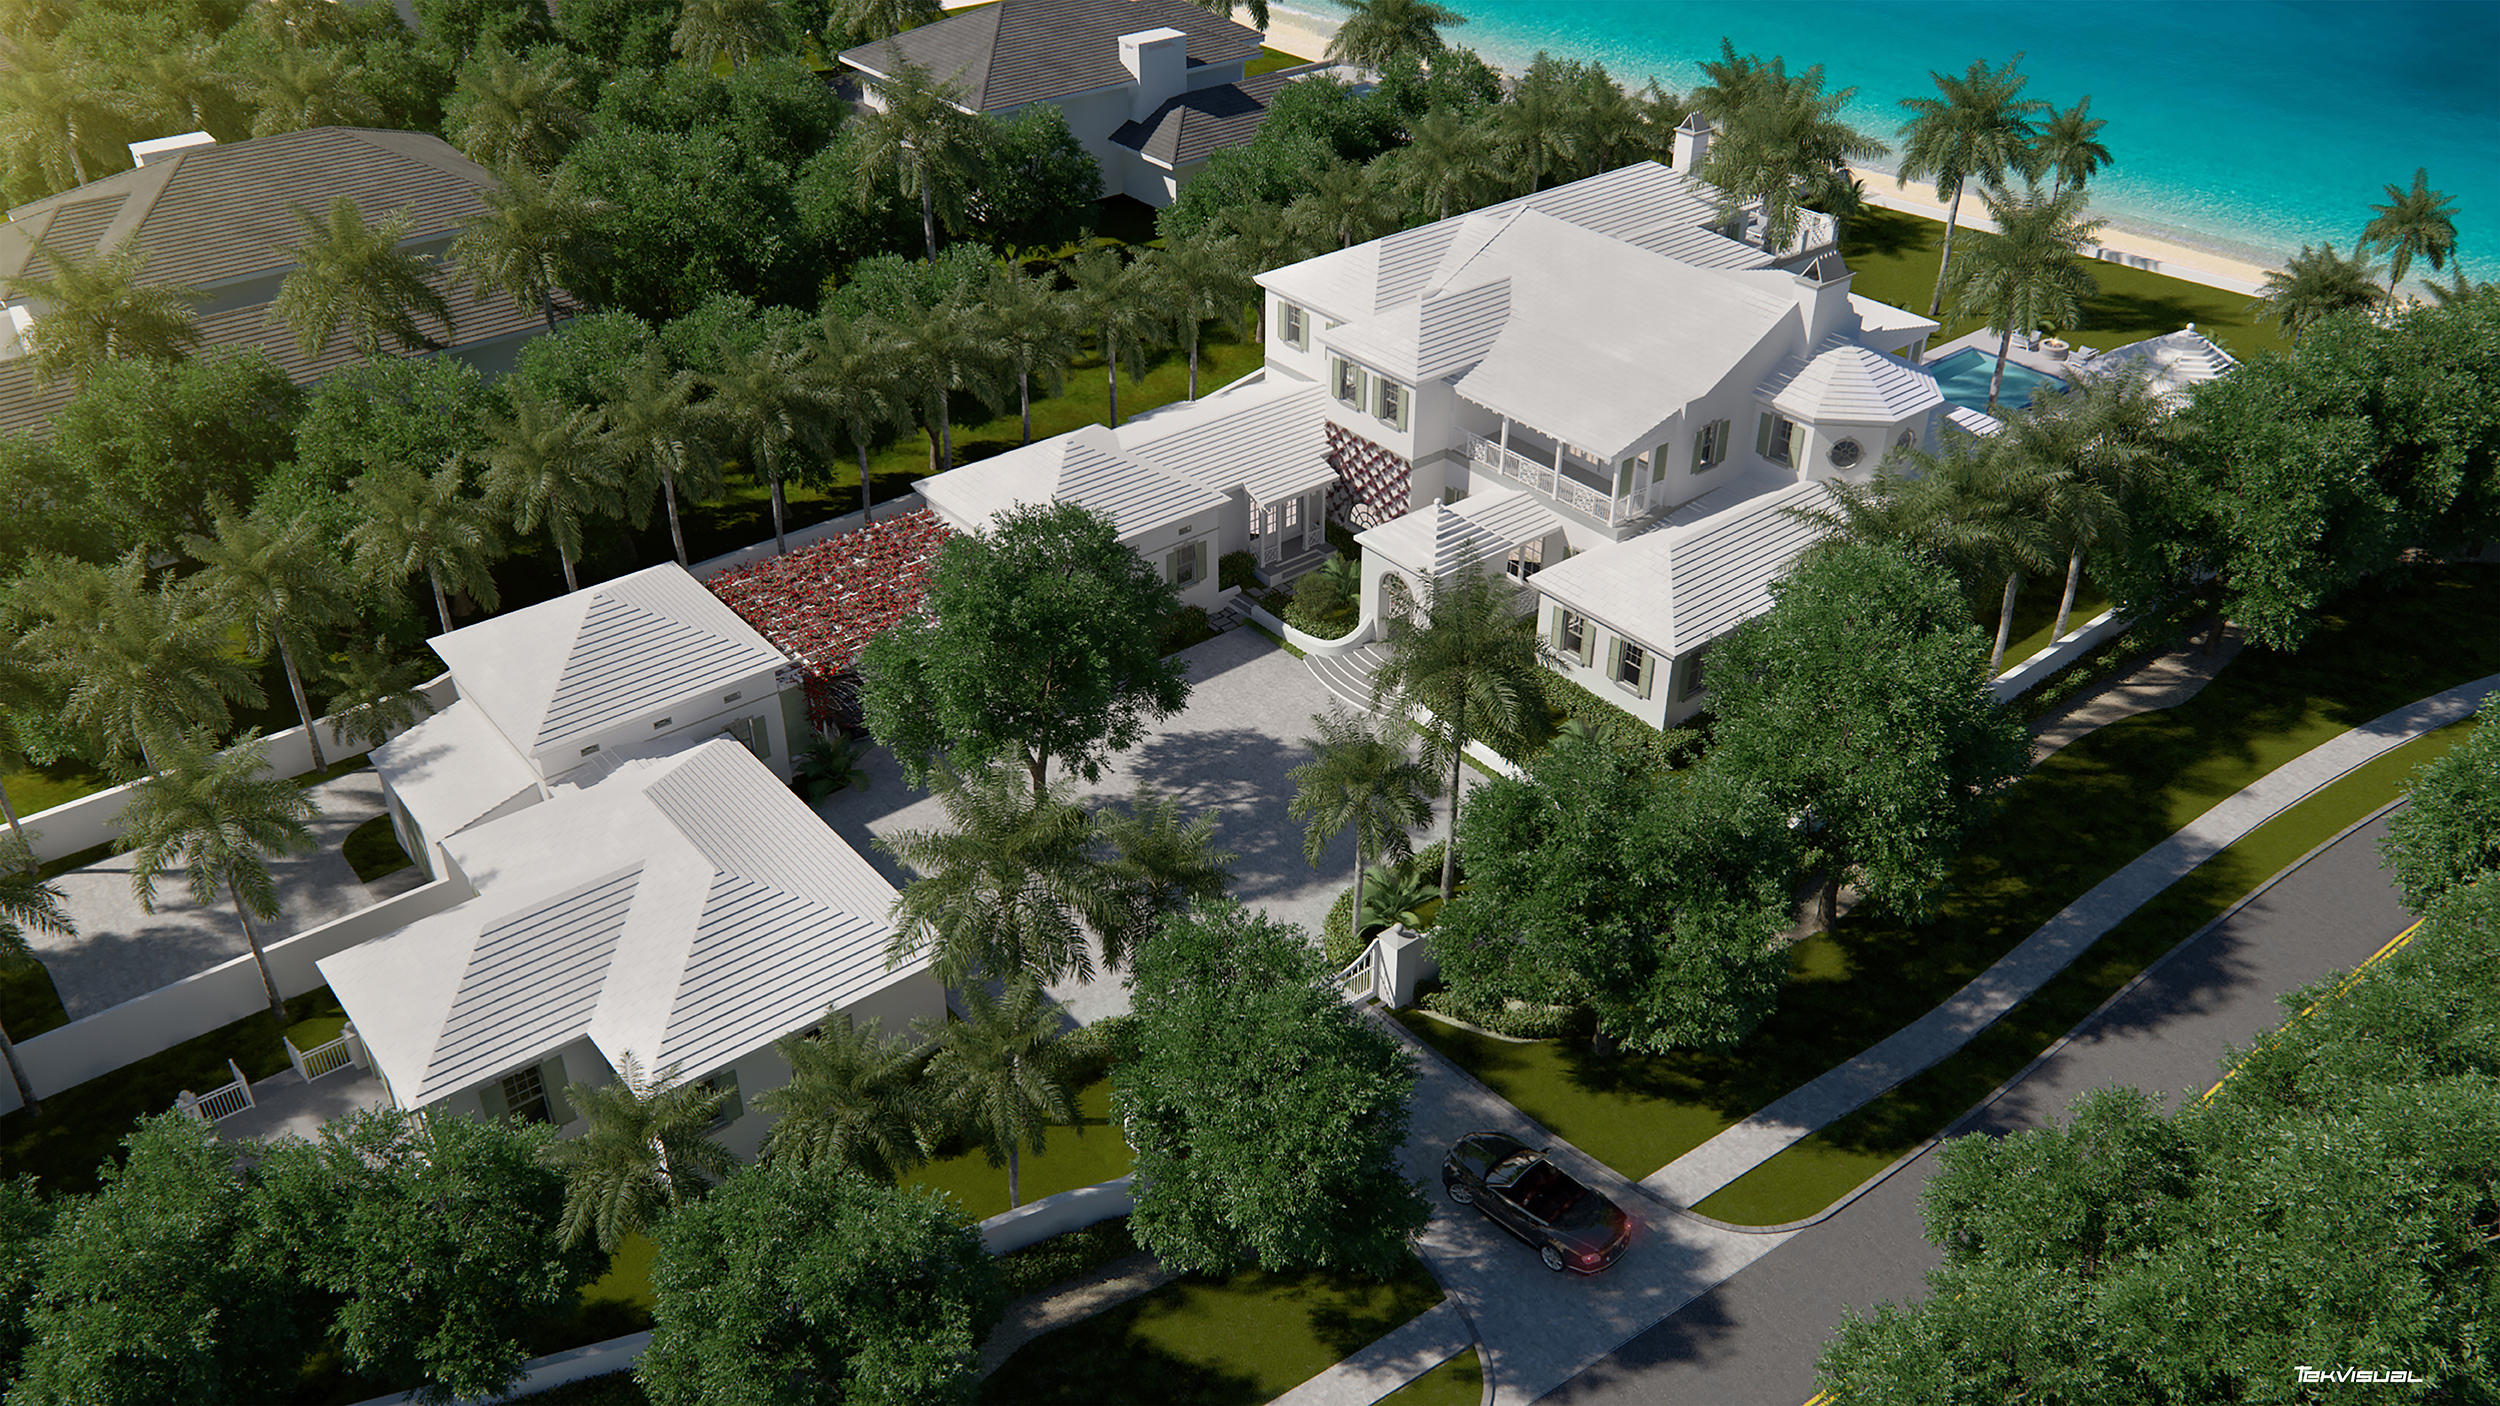 New Home for sale at 901 Ocean Boulevard in Palm Beach